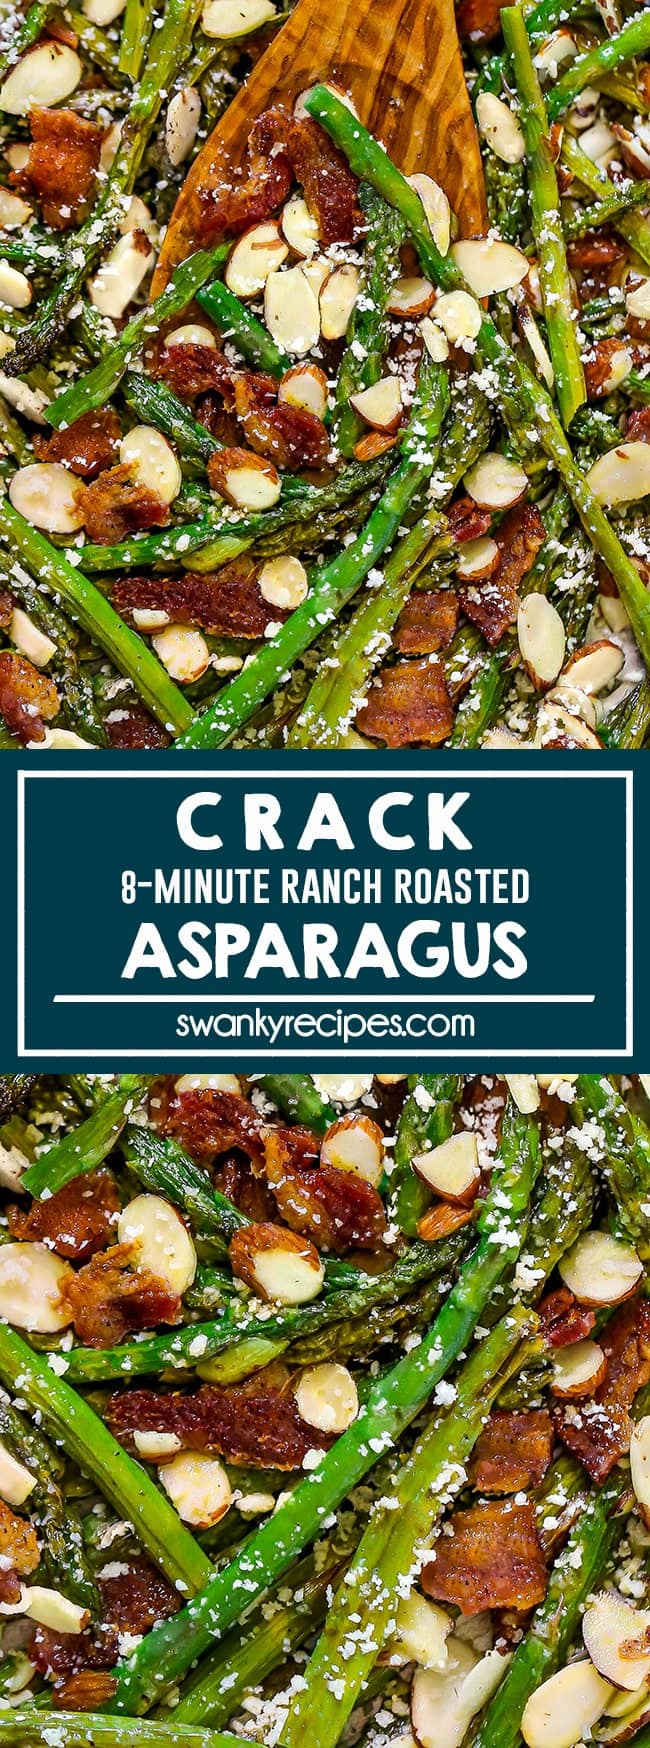 Two images with text white text in between that says Crack Asparagus 8-minute ranch roasted. First image features baked asparagus tossed on a sheet pan with pieces of bacon, almonds, and white parmesan cheese sprinkled throughout with a wooden serving spoon. Second image is a close up of the first image focusing on a serving spoon with green asparagus, bacon, almonds and cheese.